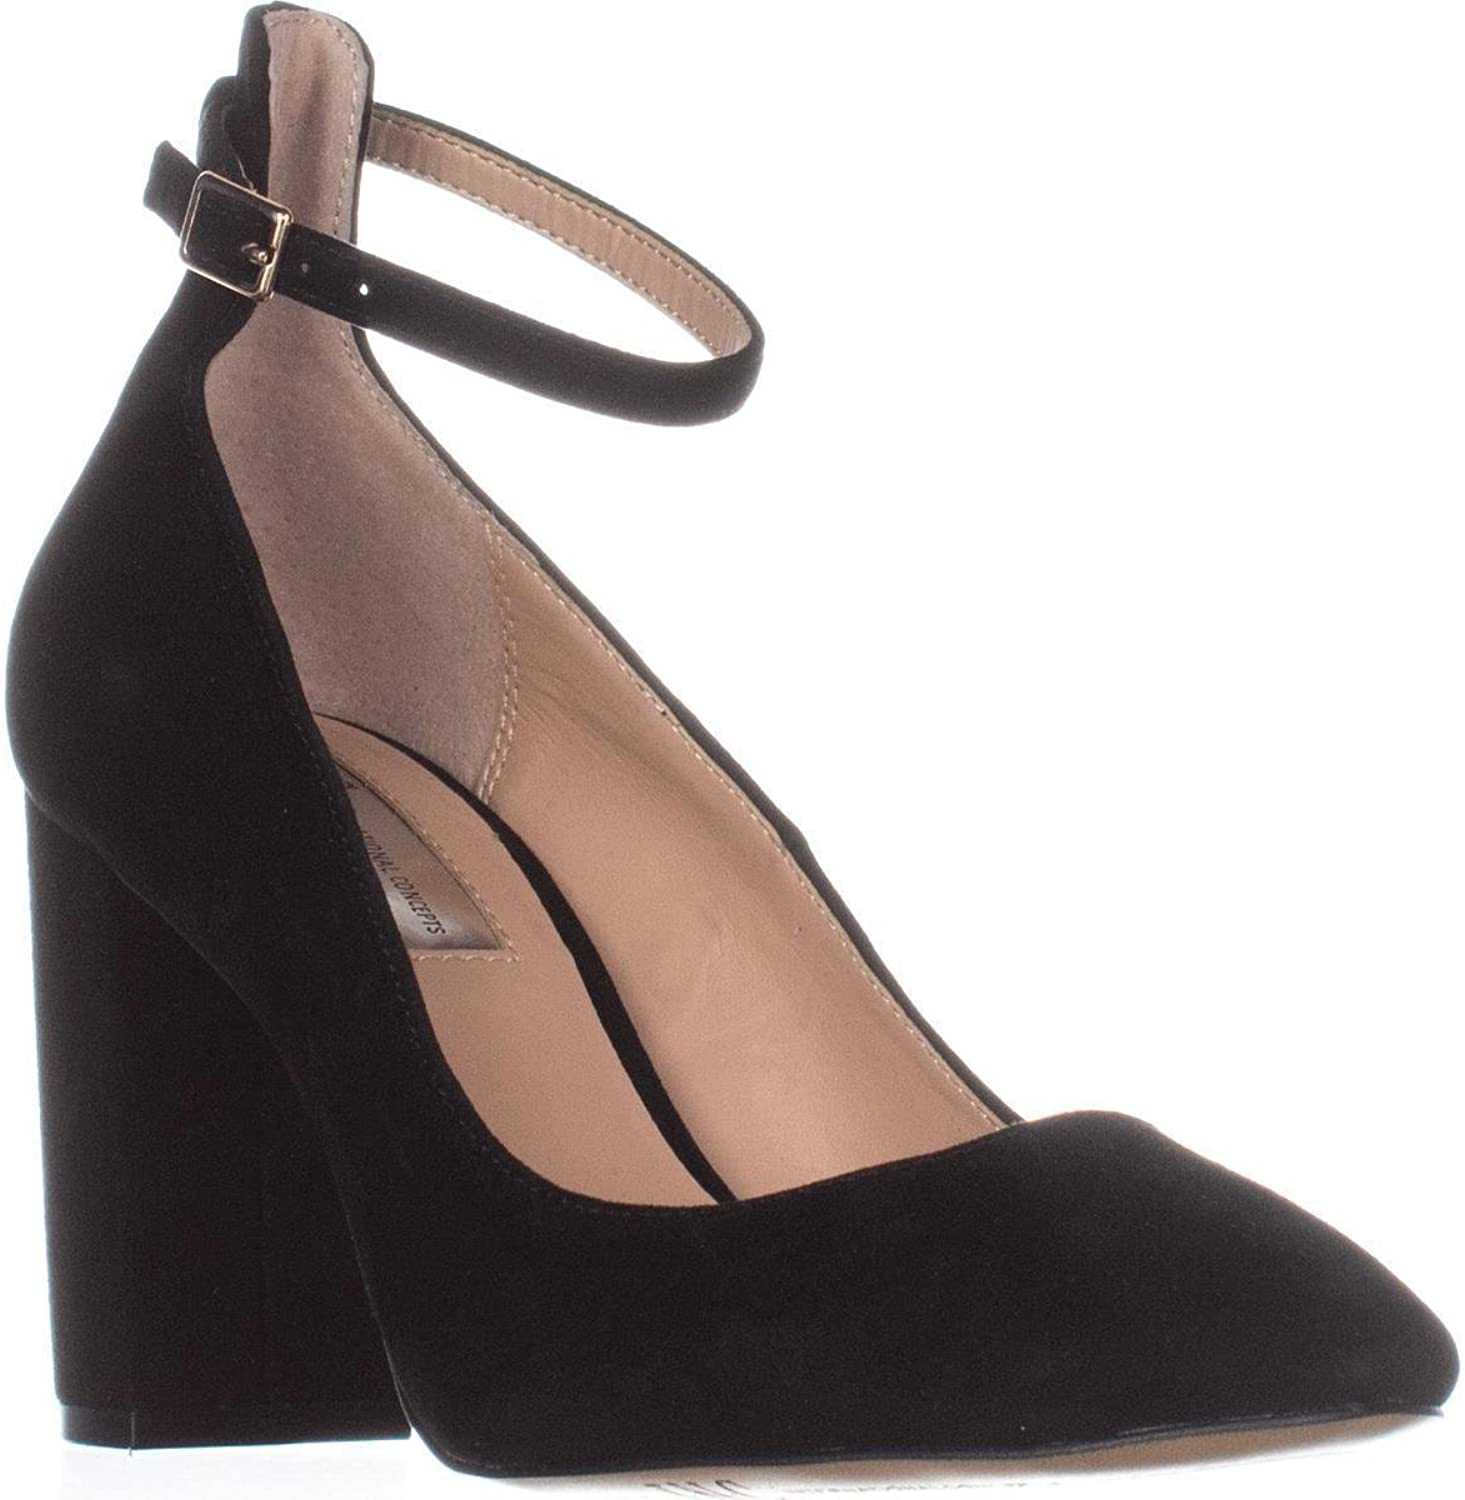 INC International Concepts Womens Gallanf Suede Closed Toe Slingback Classic